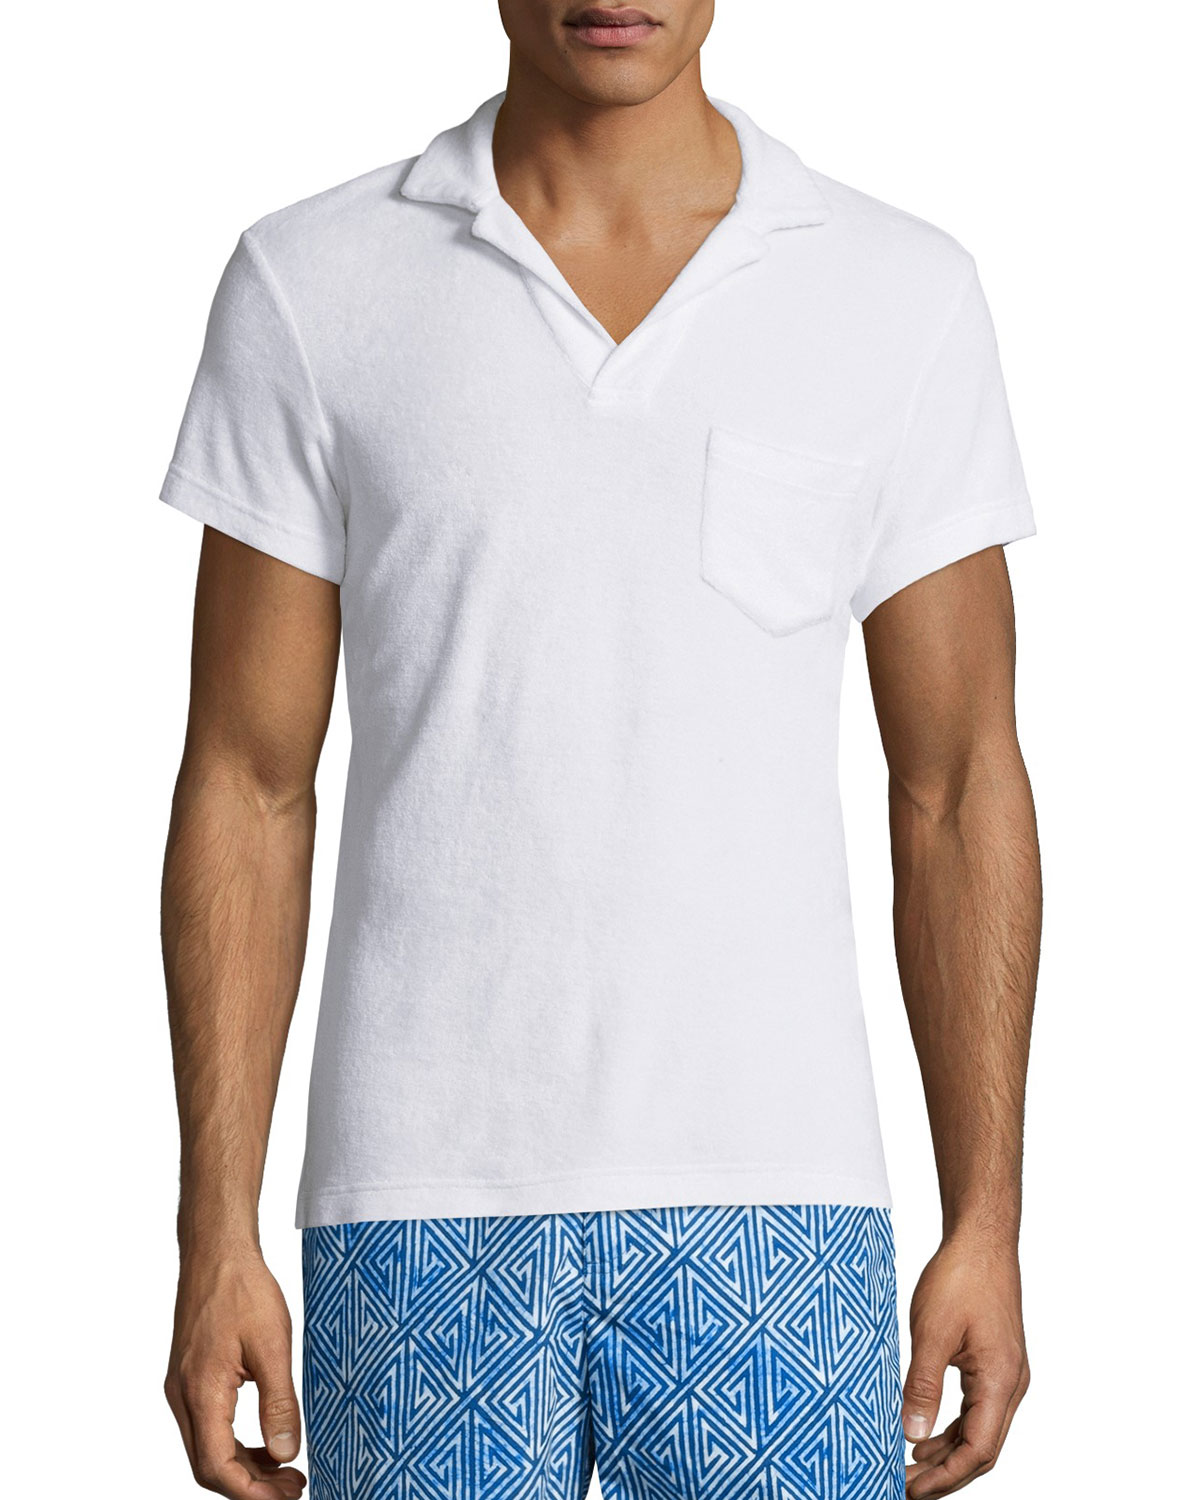 Terry Towel Polo with Pocket White